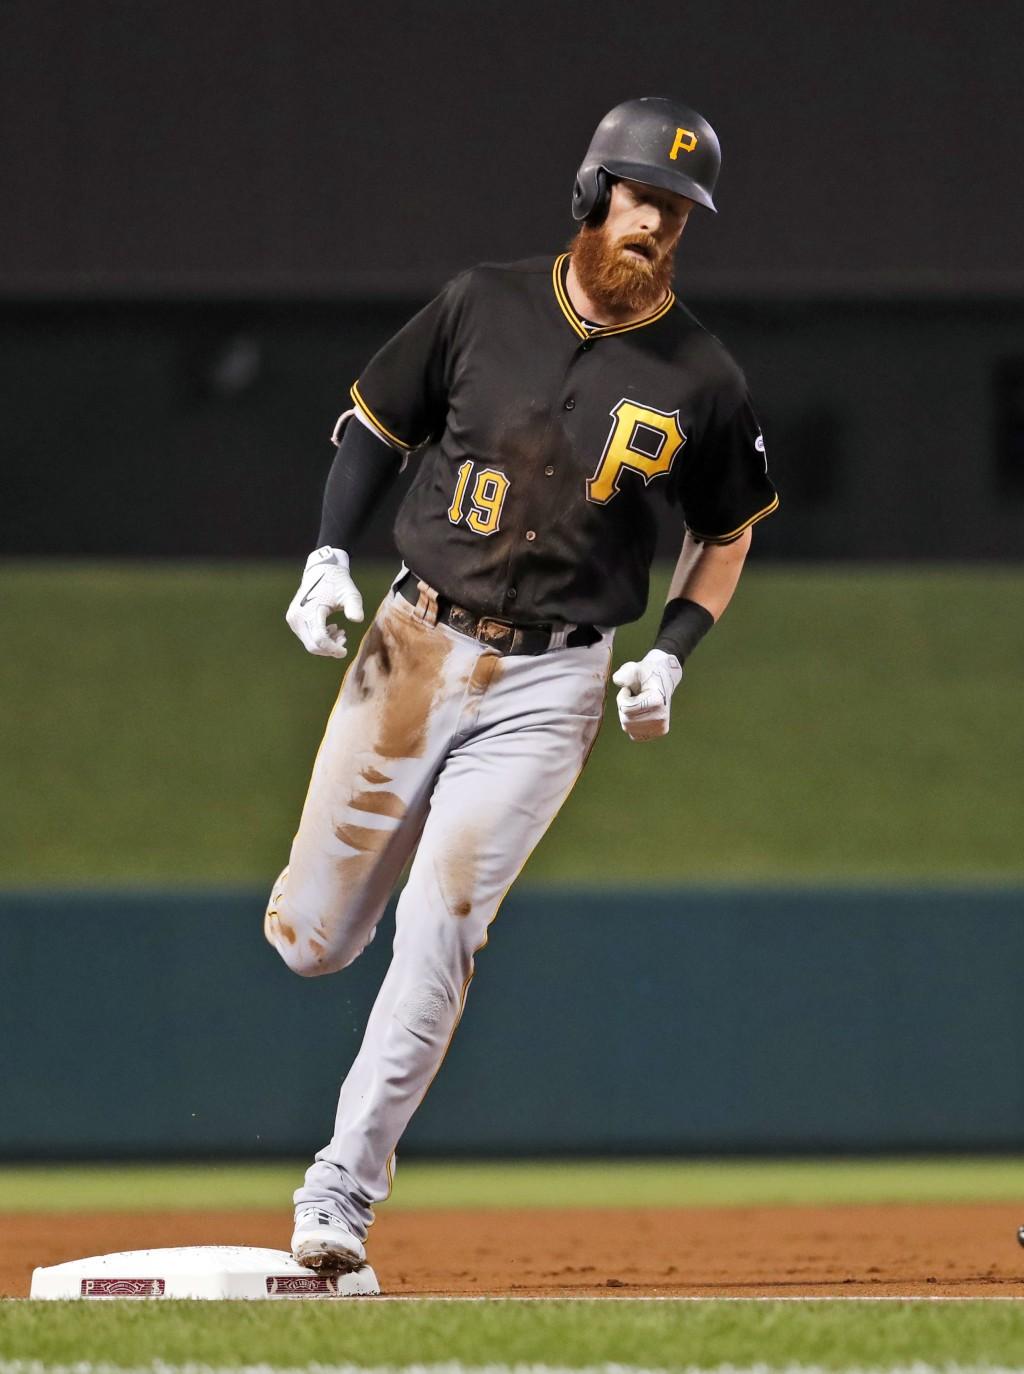 Pittsburgh Pirates' Colin Moran rounds the bases after hitting a solo home run during the second inning of a baseball game Monday, Sept. 10, 2018, in